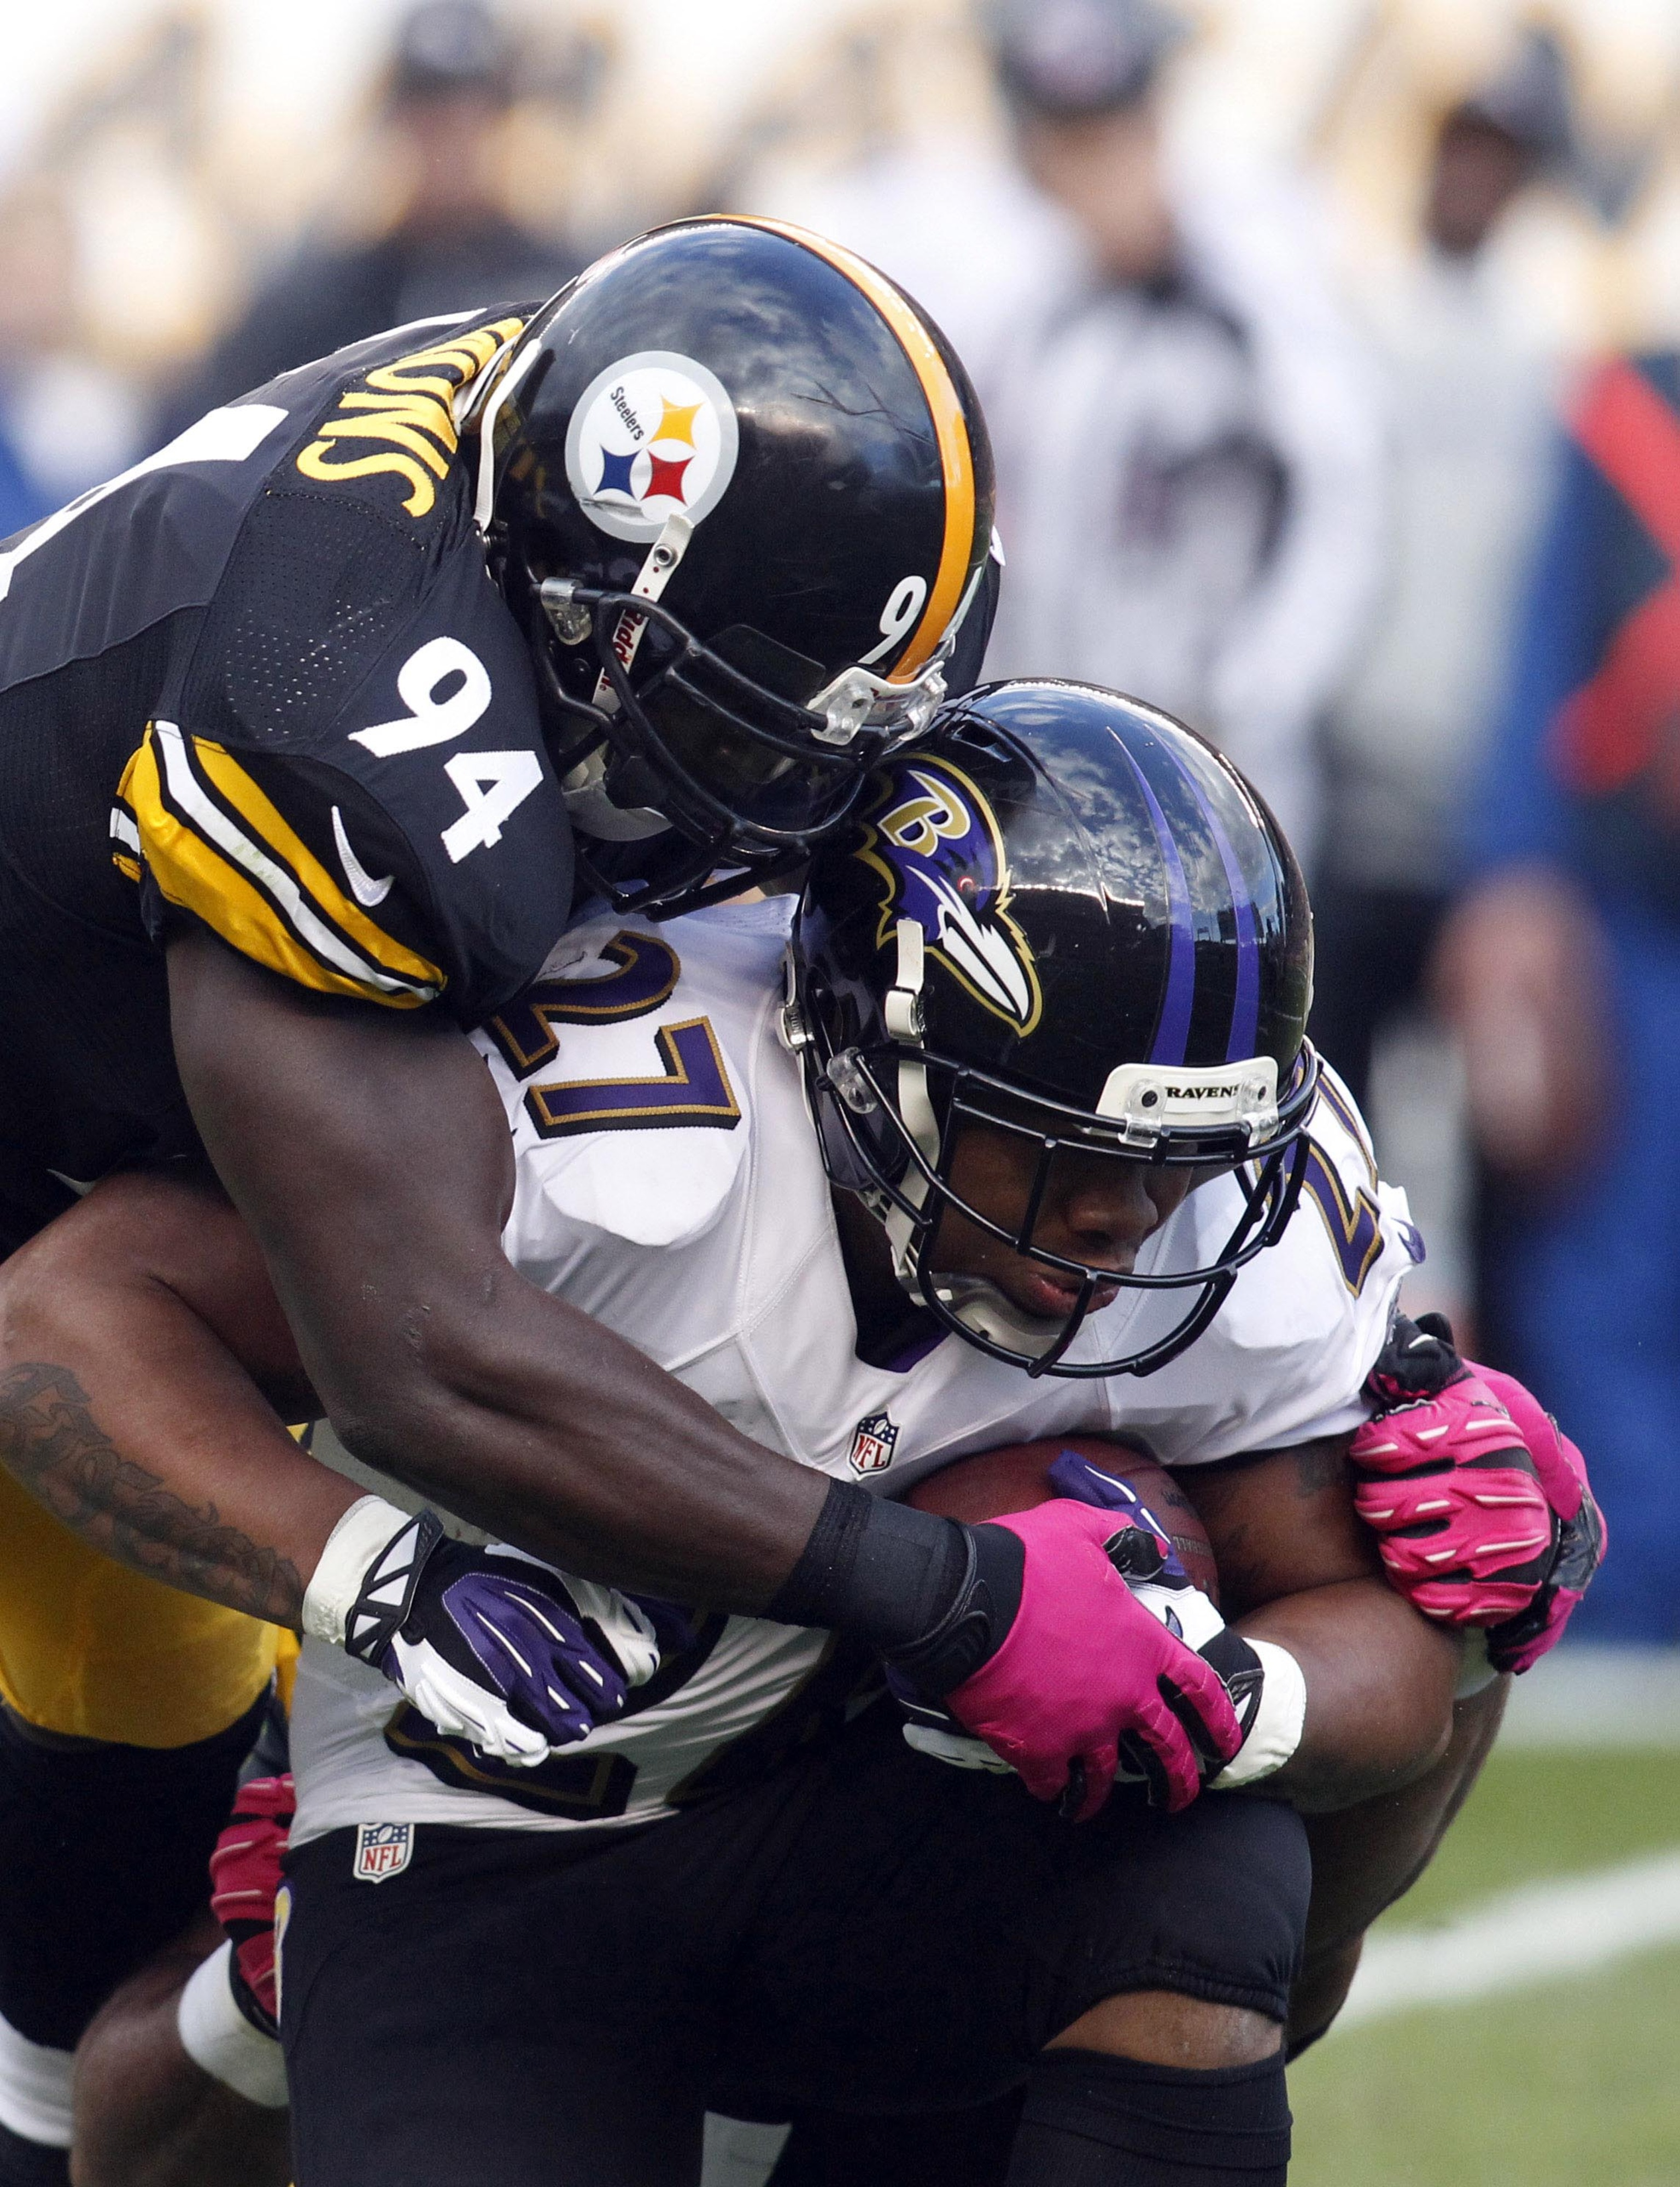 Timmons registered 17 tackles against the Baltimore Ravens this Sunday.